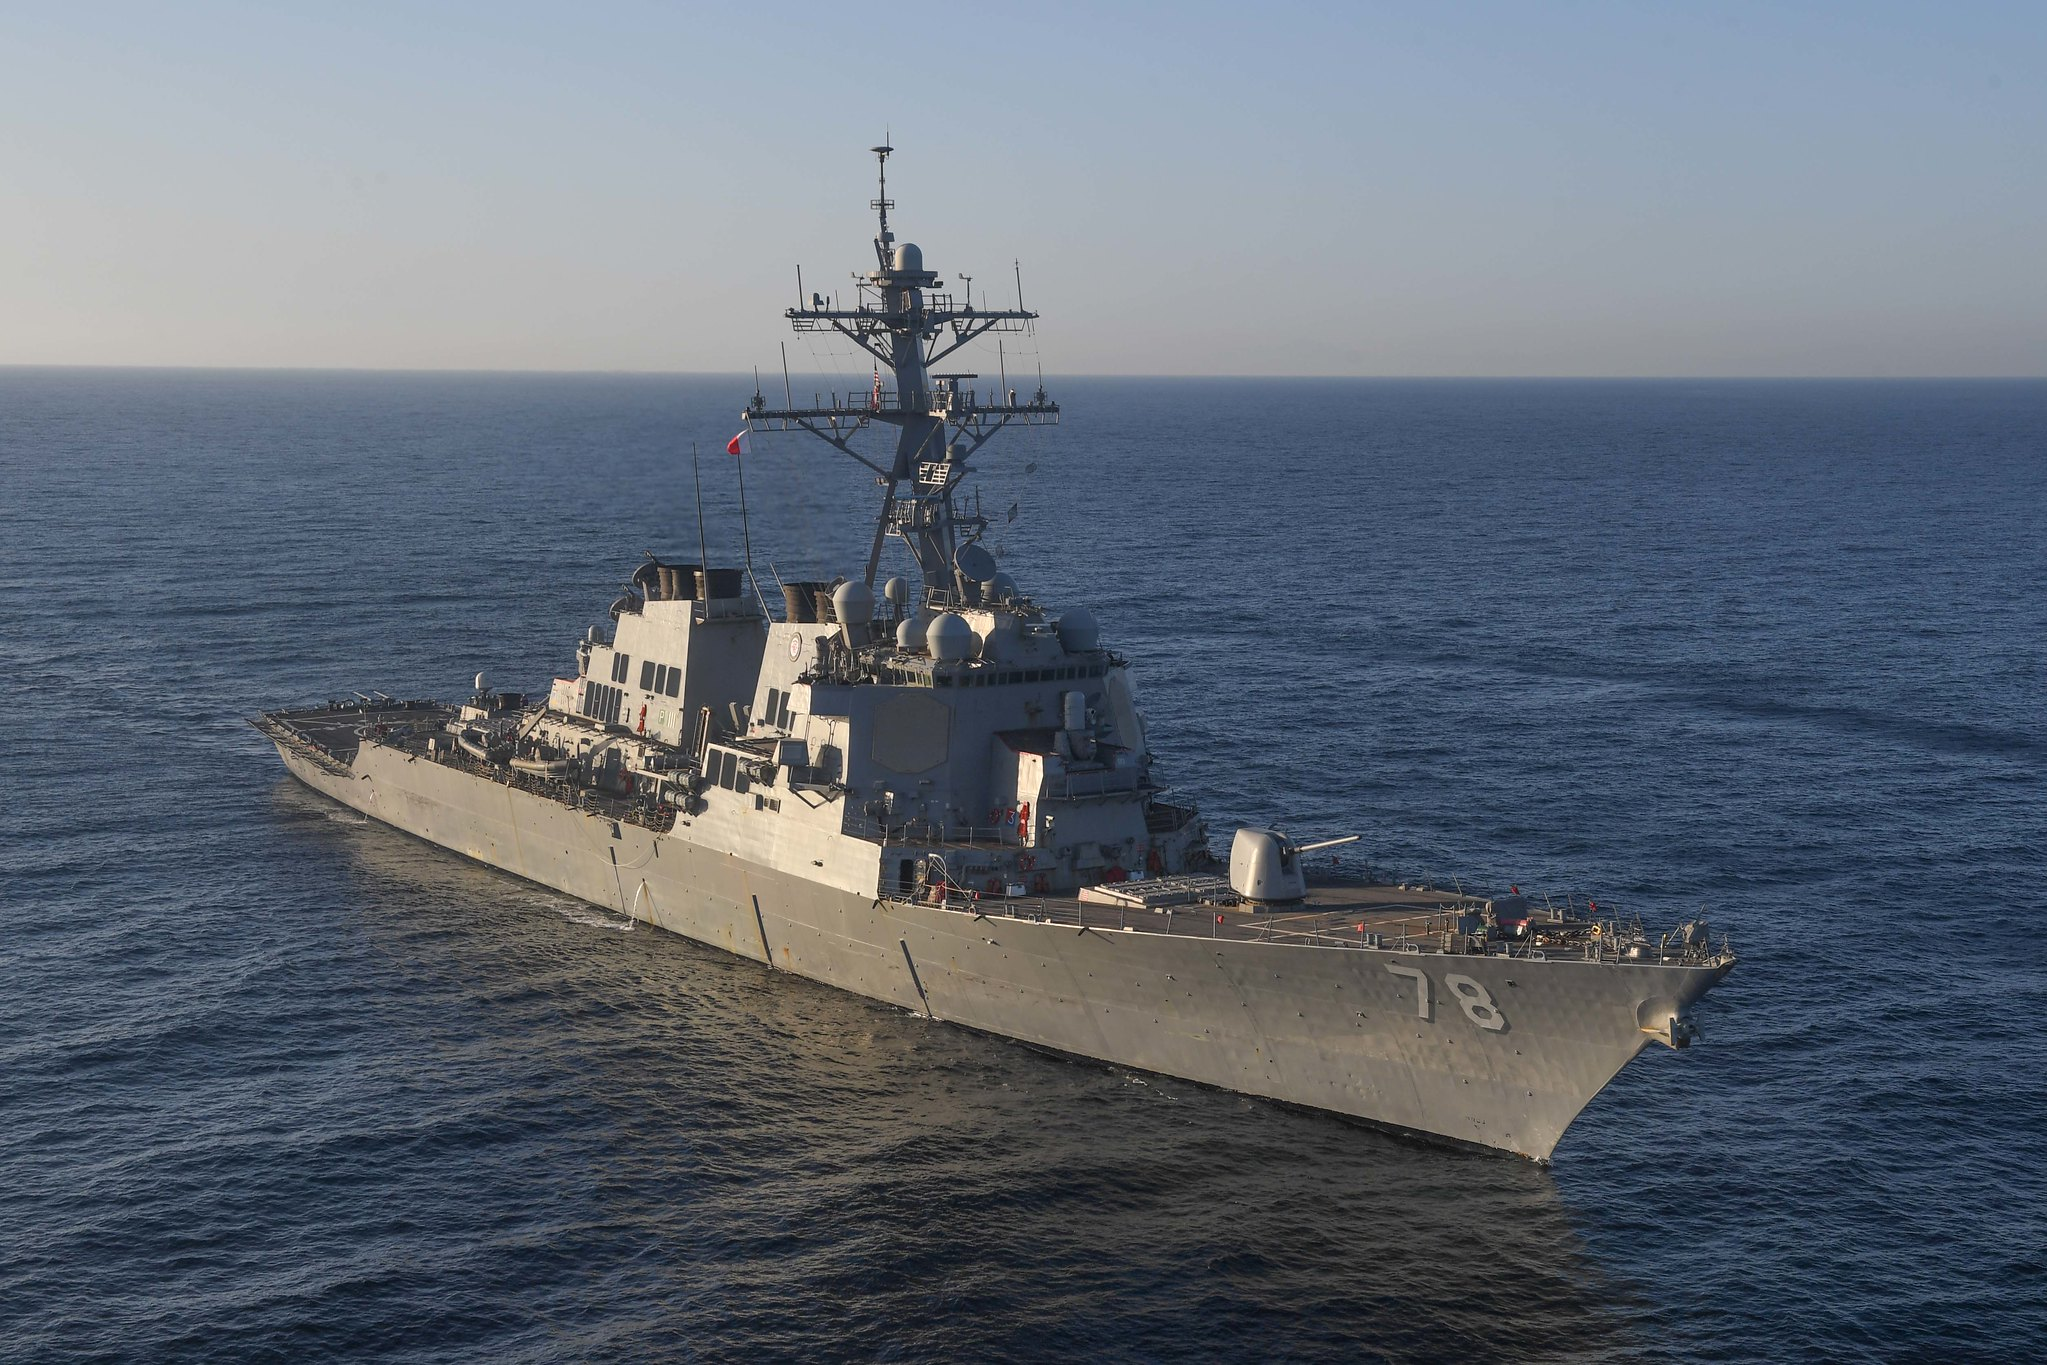 DDG : Arleigh Burke class destroyer - Page 4 32540551893_7c87e4a261_k